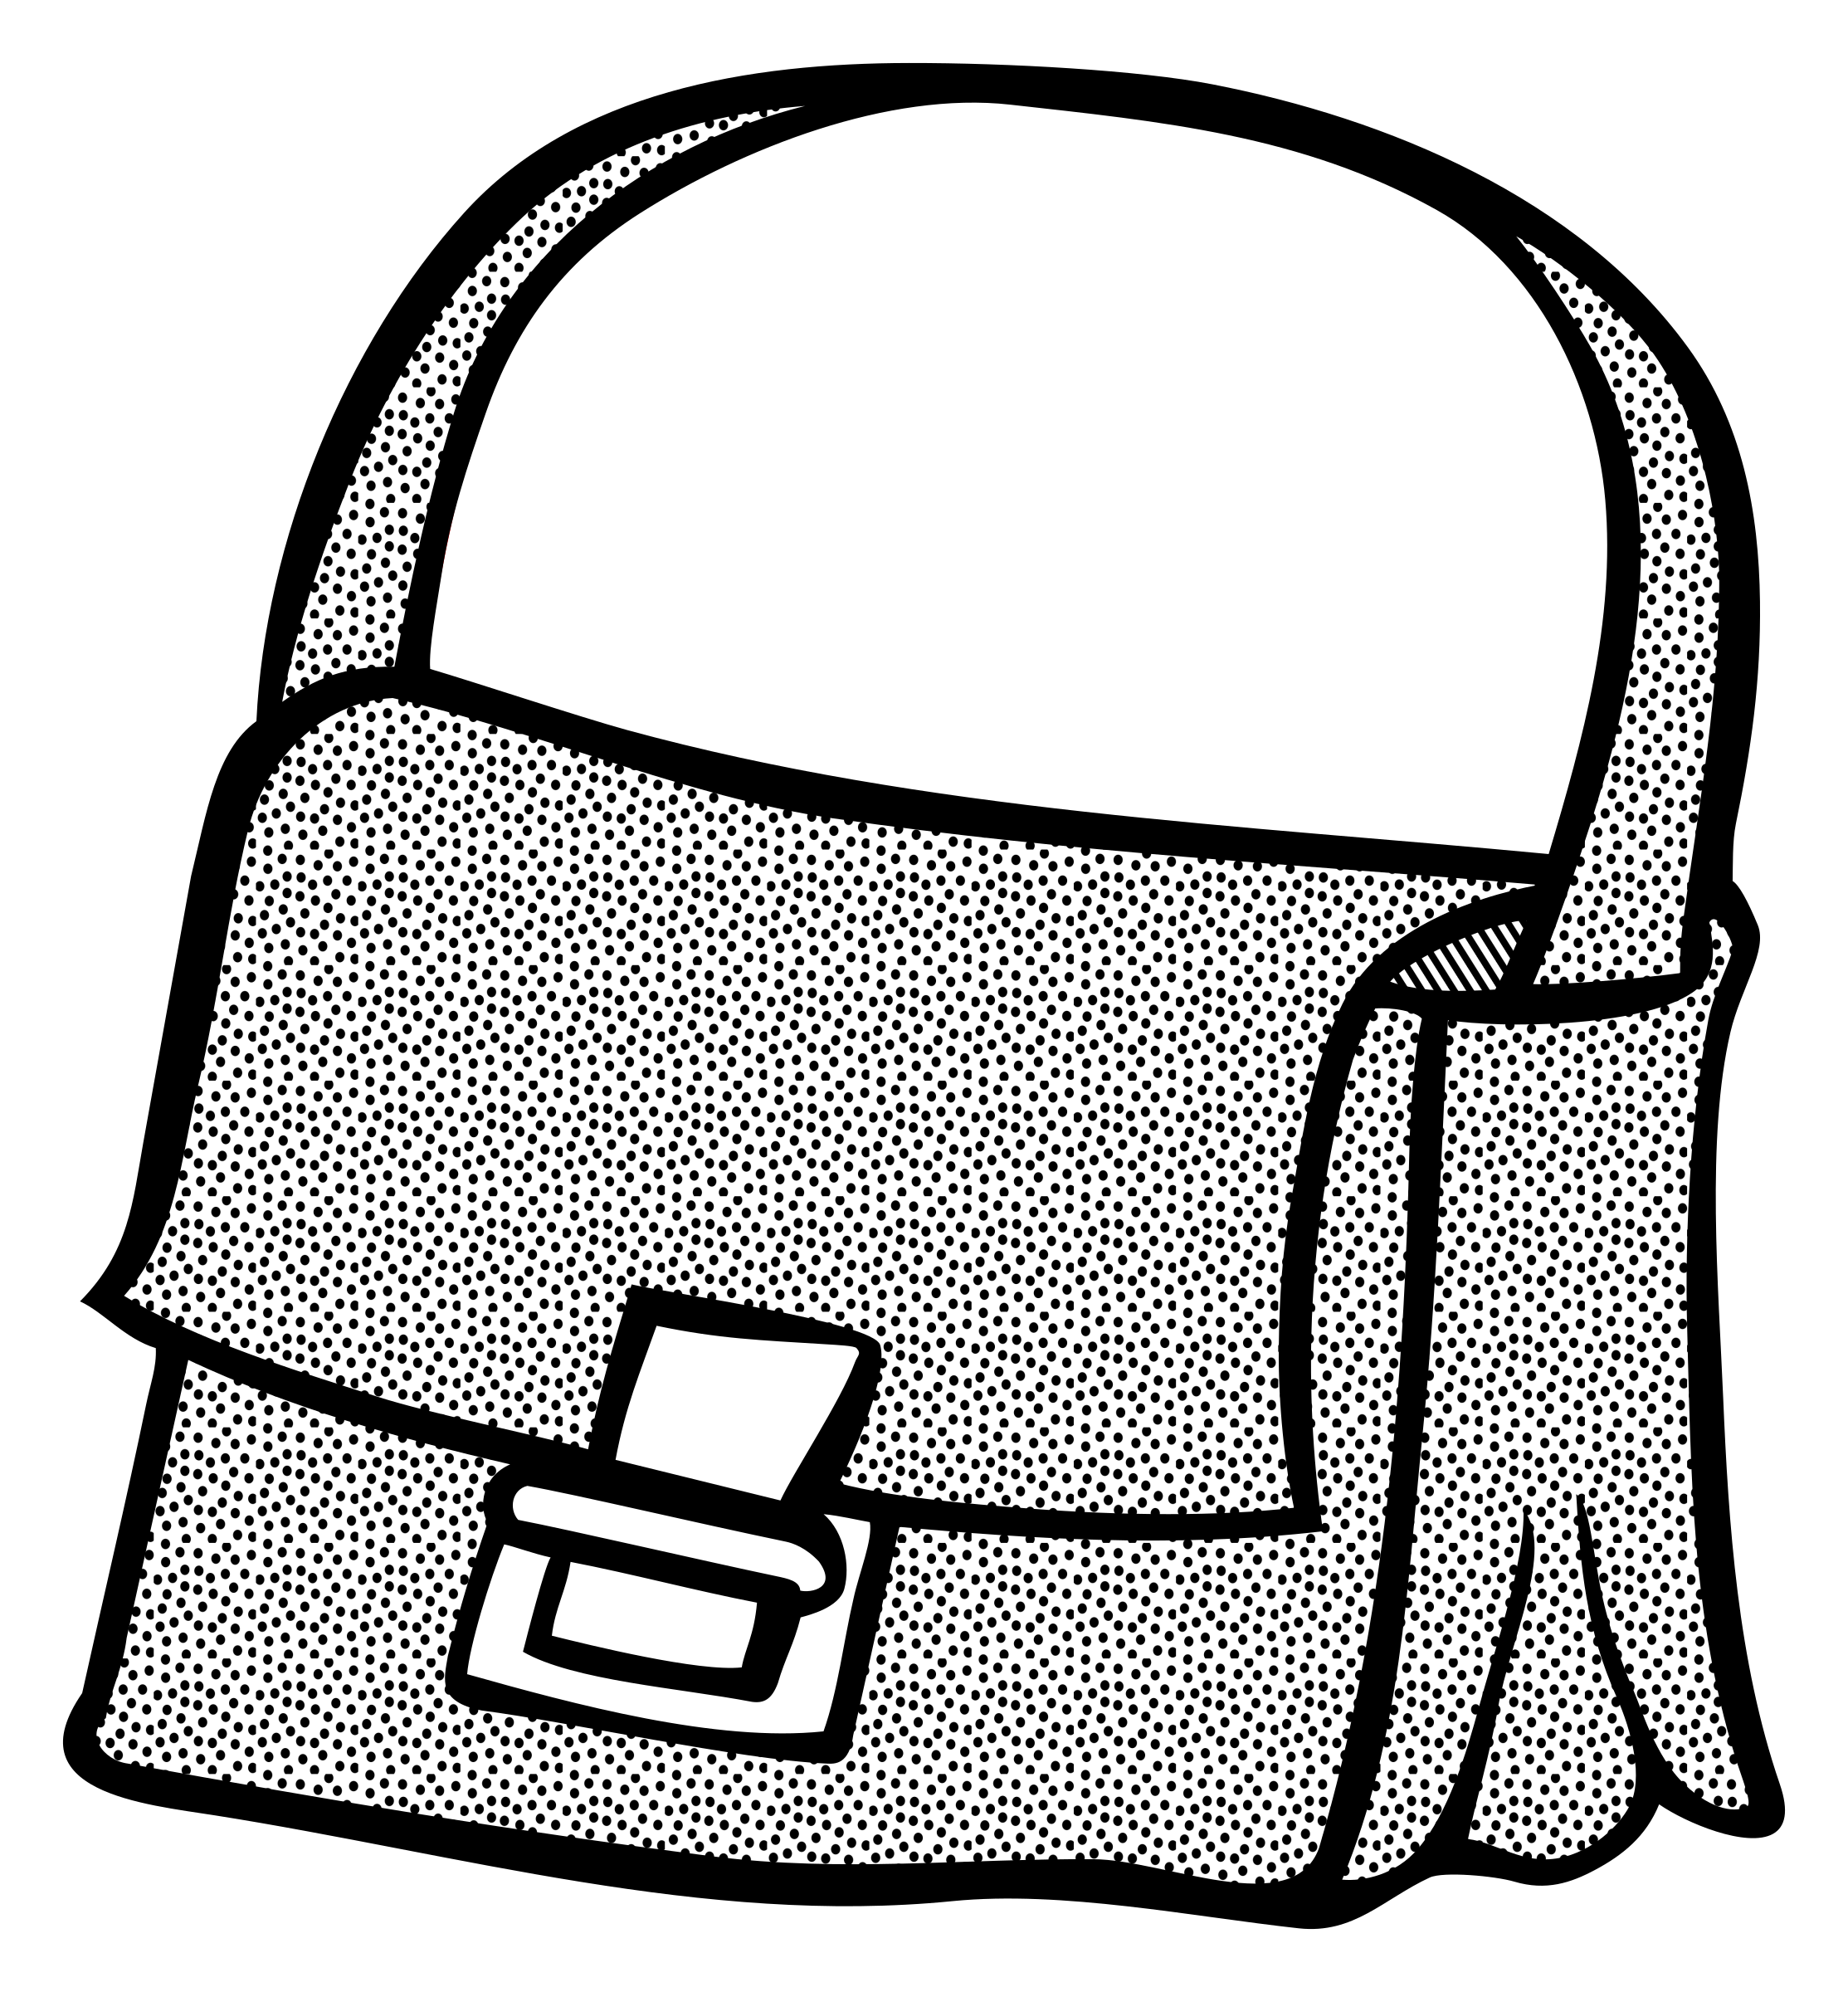 Lady with bag of money clipart image transparent stock Bag Line Drawing at GetDrawings.com | Free for personal use Bag Line ... image transparent stock